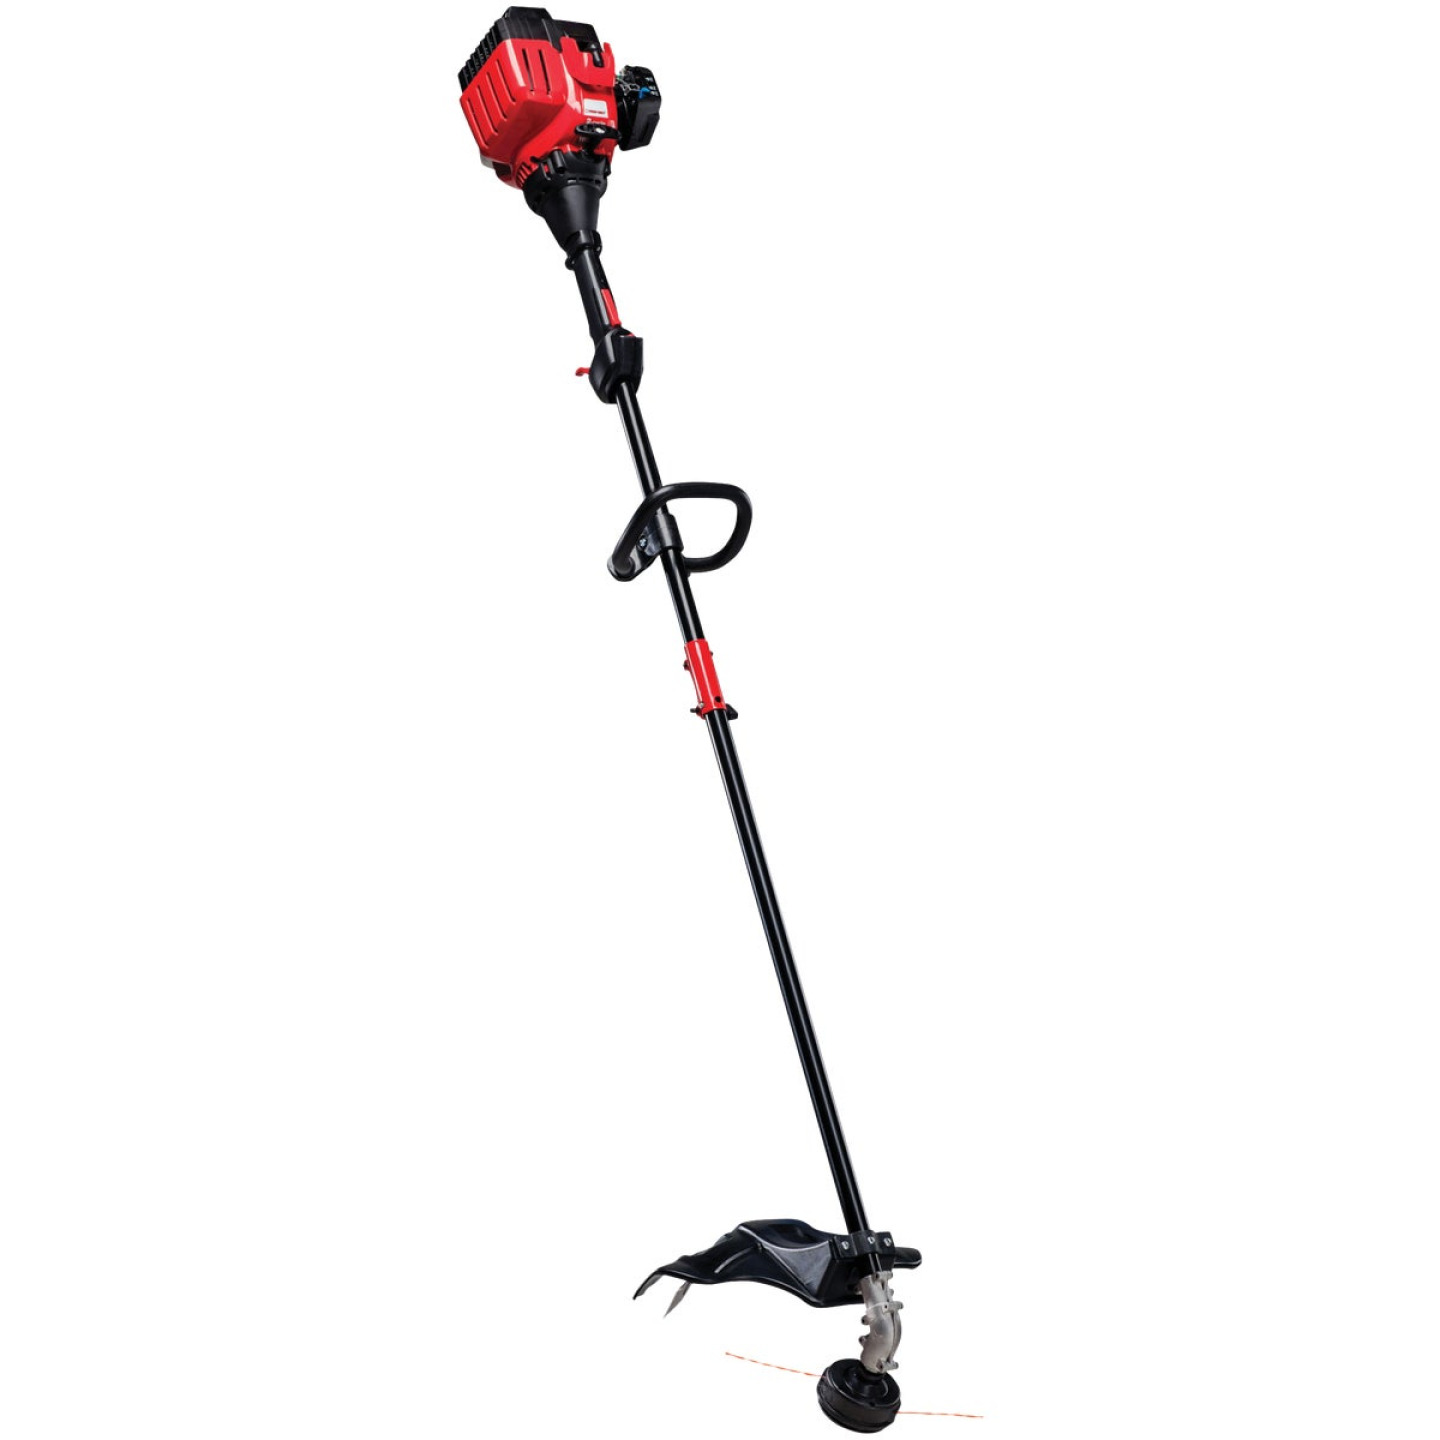 Troy-Bilt TB252S 25cc 2-Cycle 17 In. Straight Shaft Gas Trimmer Image 1